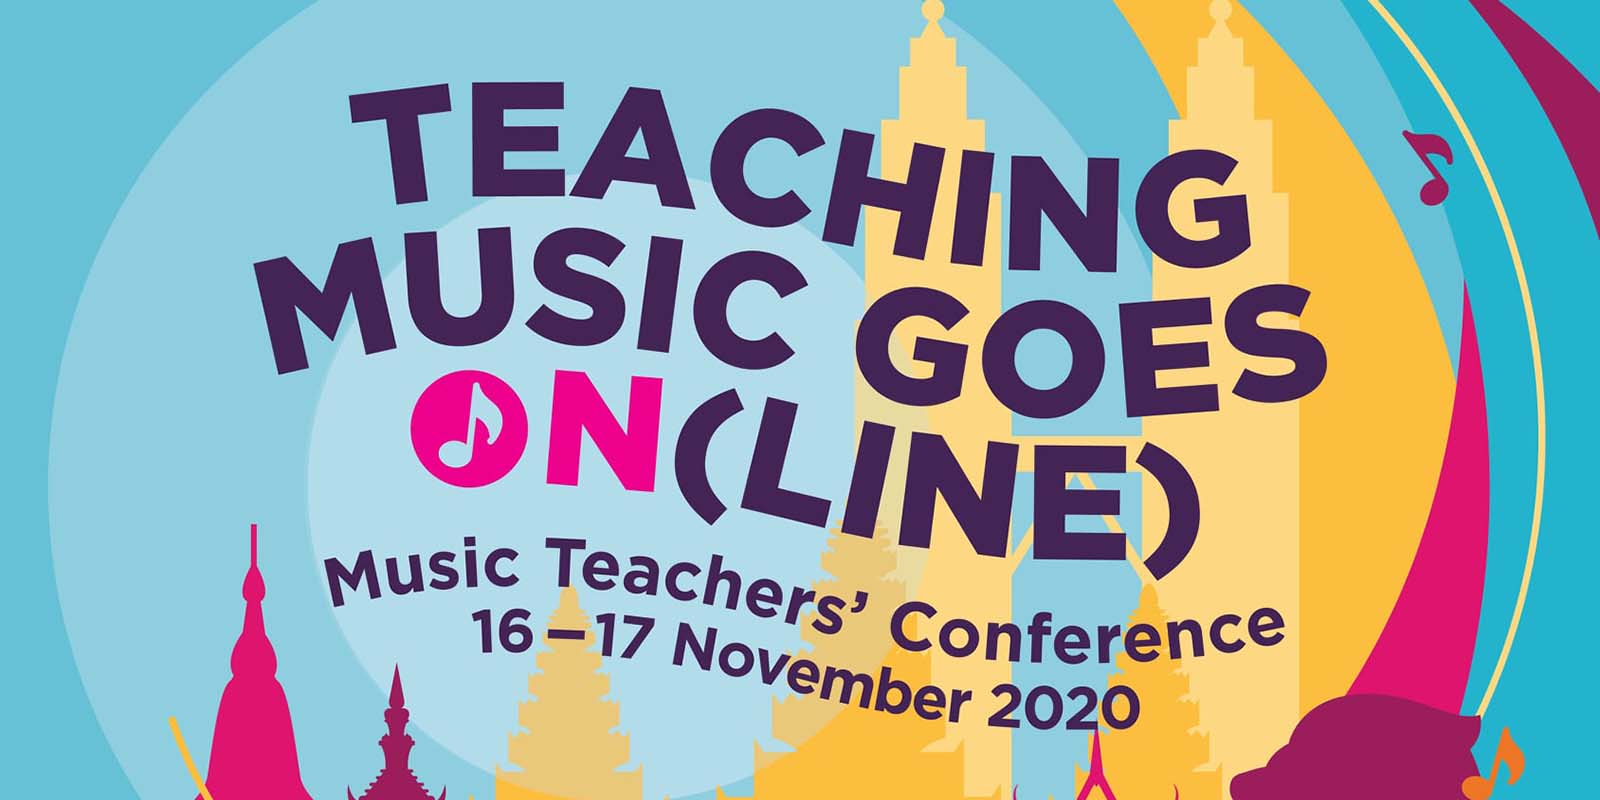 Teaching Music Goes Online